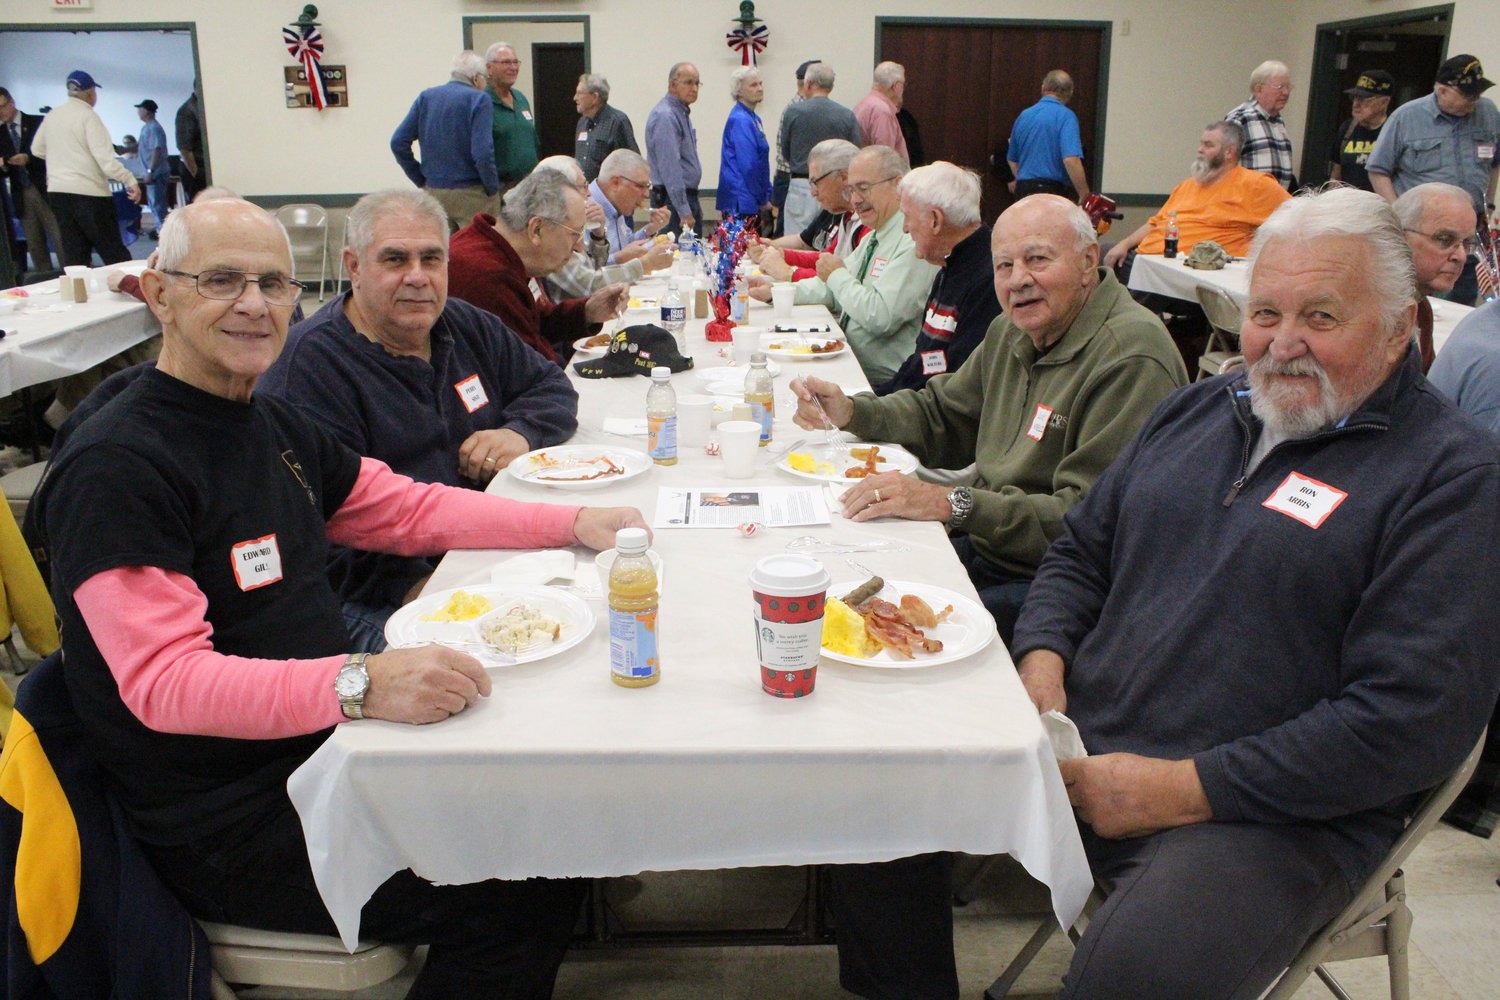 Navy and Army reserve veteran Edward Gill, Navy veteran Perry Sisti, Marine Corps veteran Ron Arris, and Army and Airforce veteran Louis Verdelli enjoy a meal during Rep. Tom Mehaffie's Veterans Breakfast at the Lower Swatara Fire Hall Nov. 8.